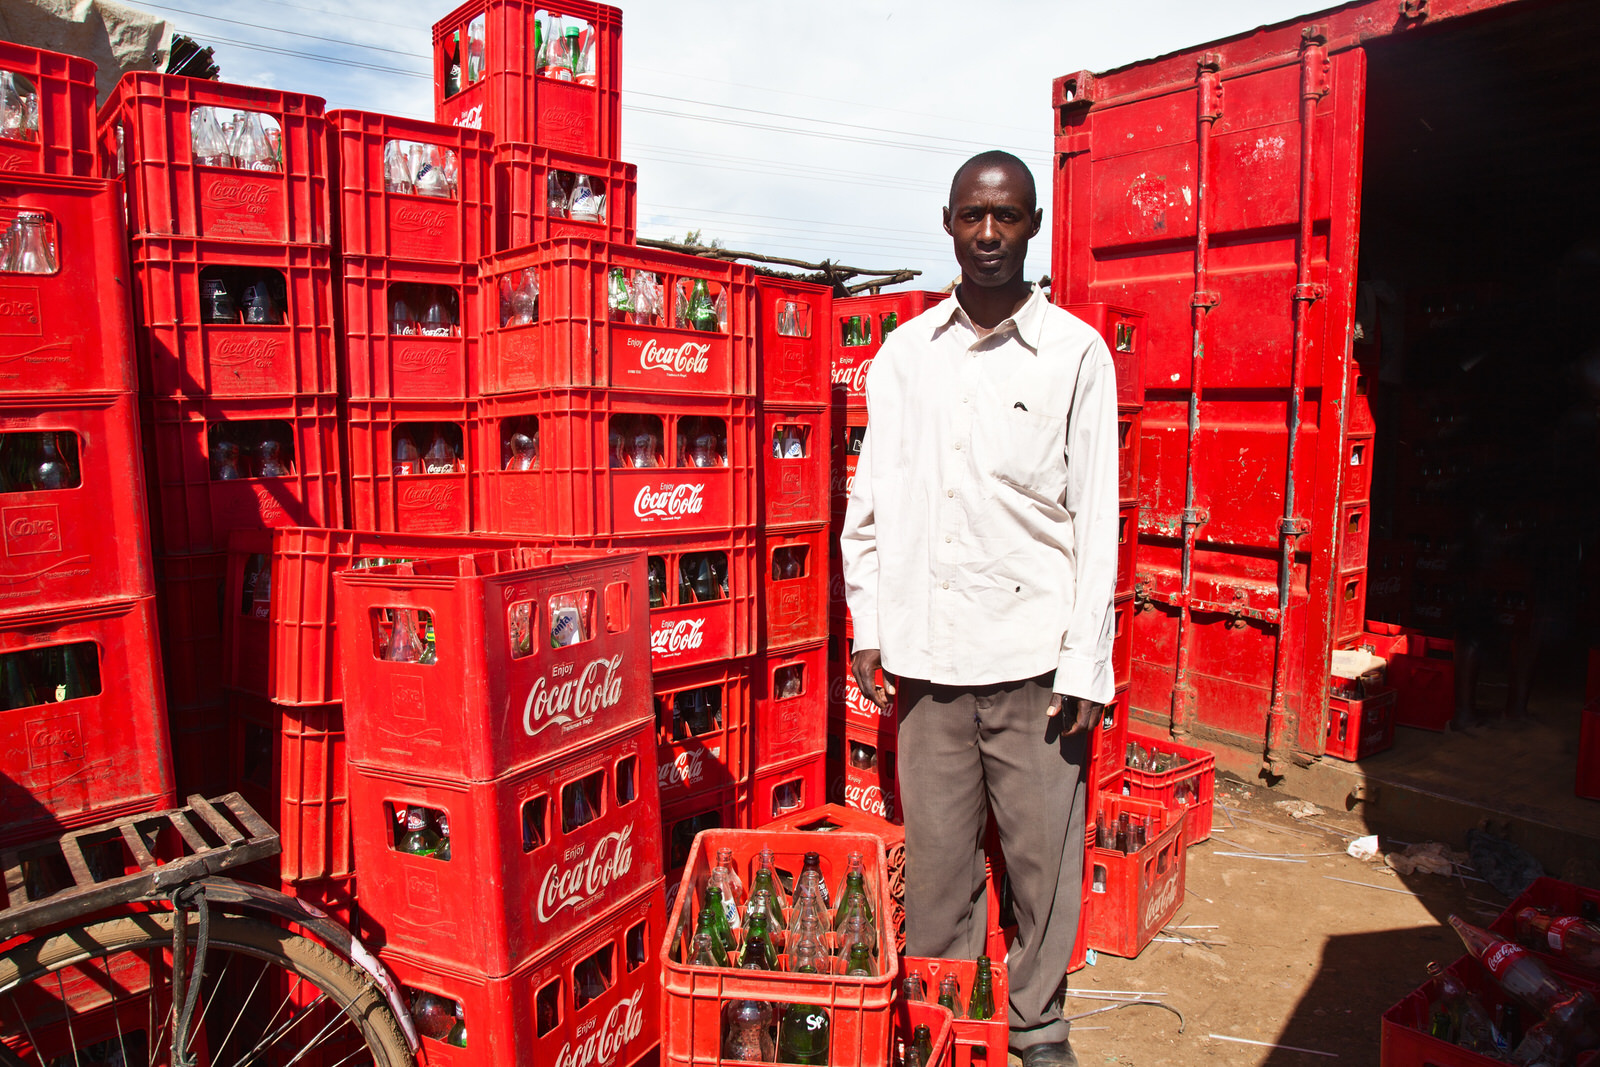 Richard Odhiameo  is a Coca Cola distributor in Kondele. Richard has been told that Kondele will be evicted. He fears his structure will be broken in the relocation process.